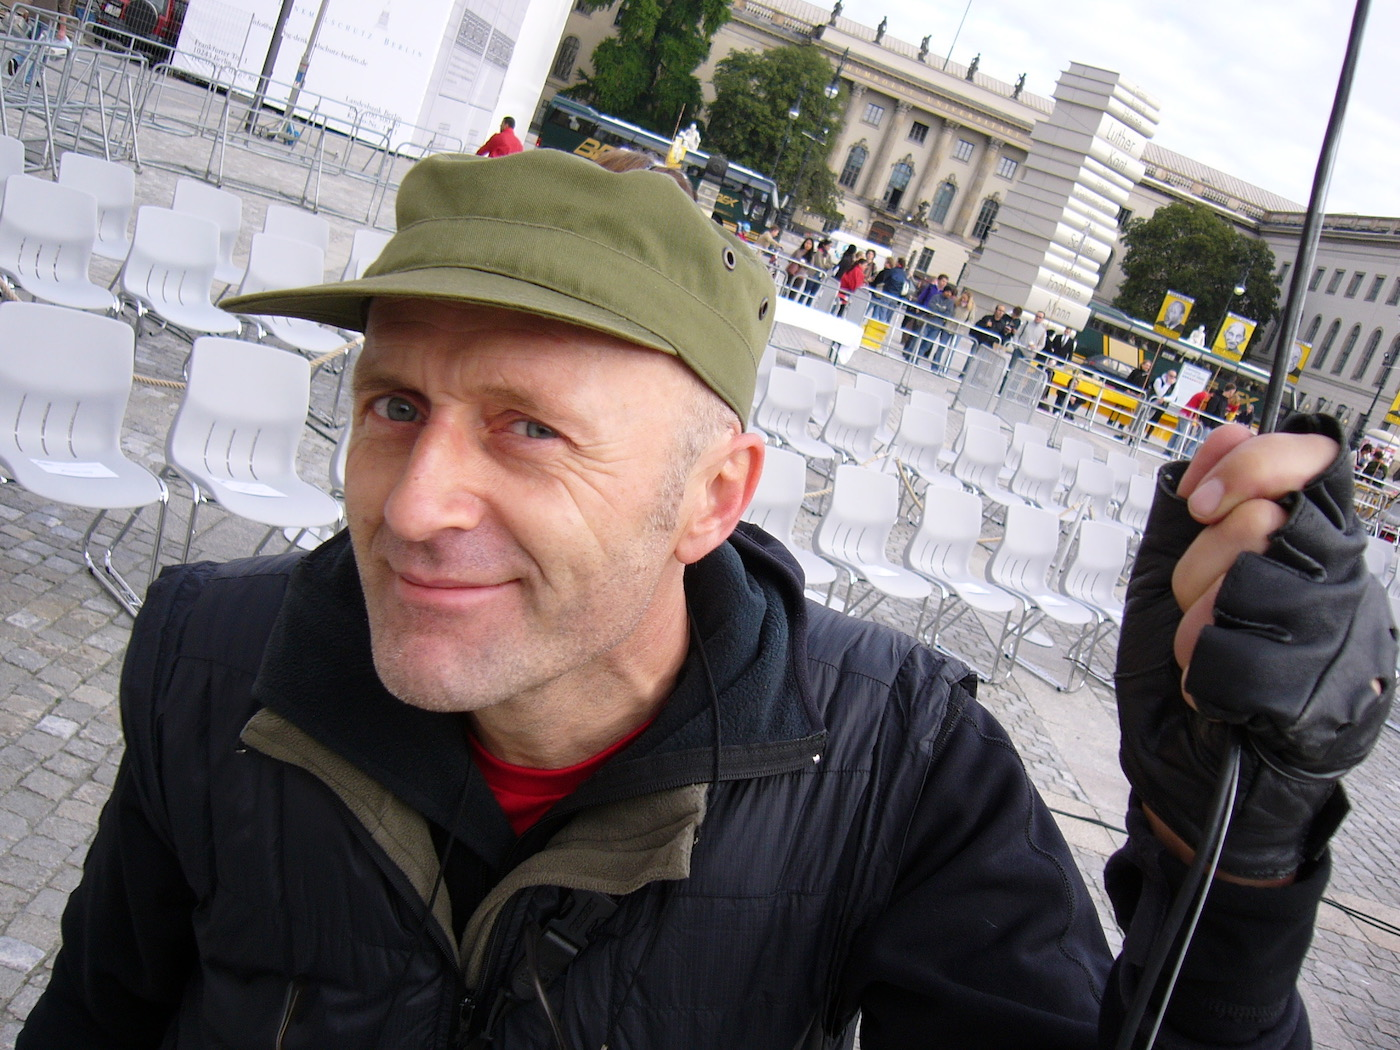 mark_benecke_dropping_knowledge_berlin_bebelplatz_opernplatz_unter_den_linden_table_of_free_voices - 21.jpg